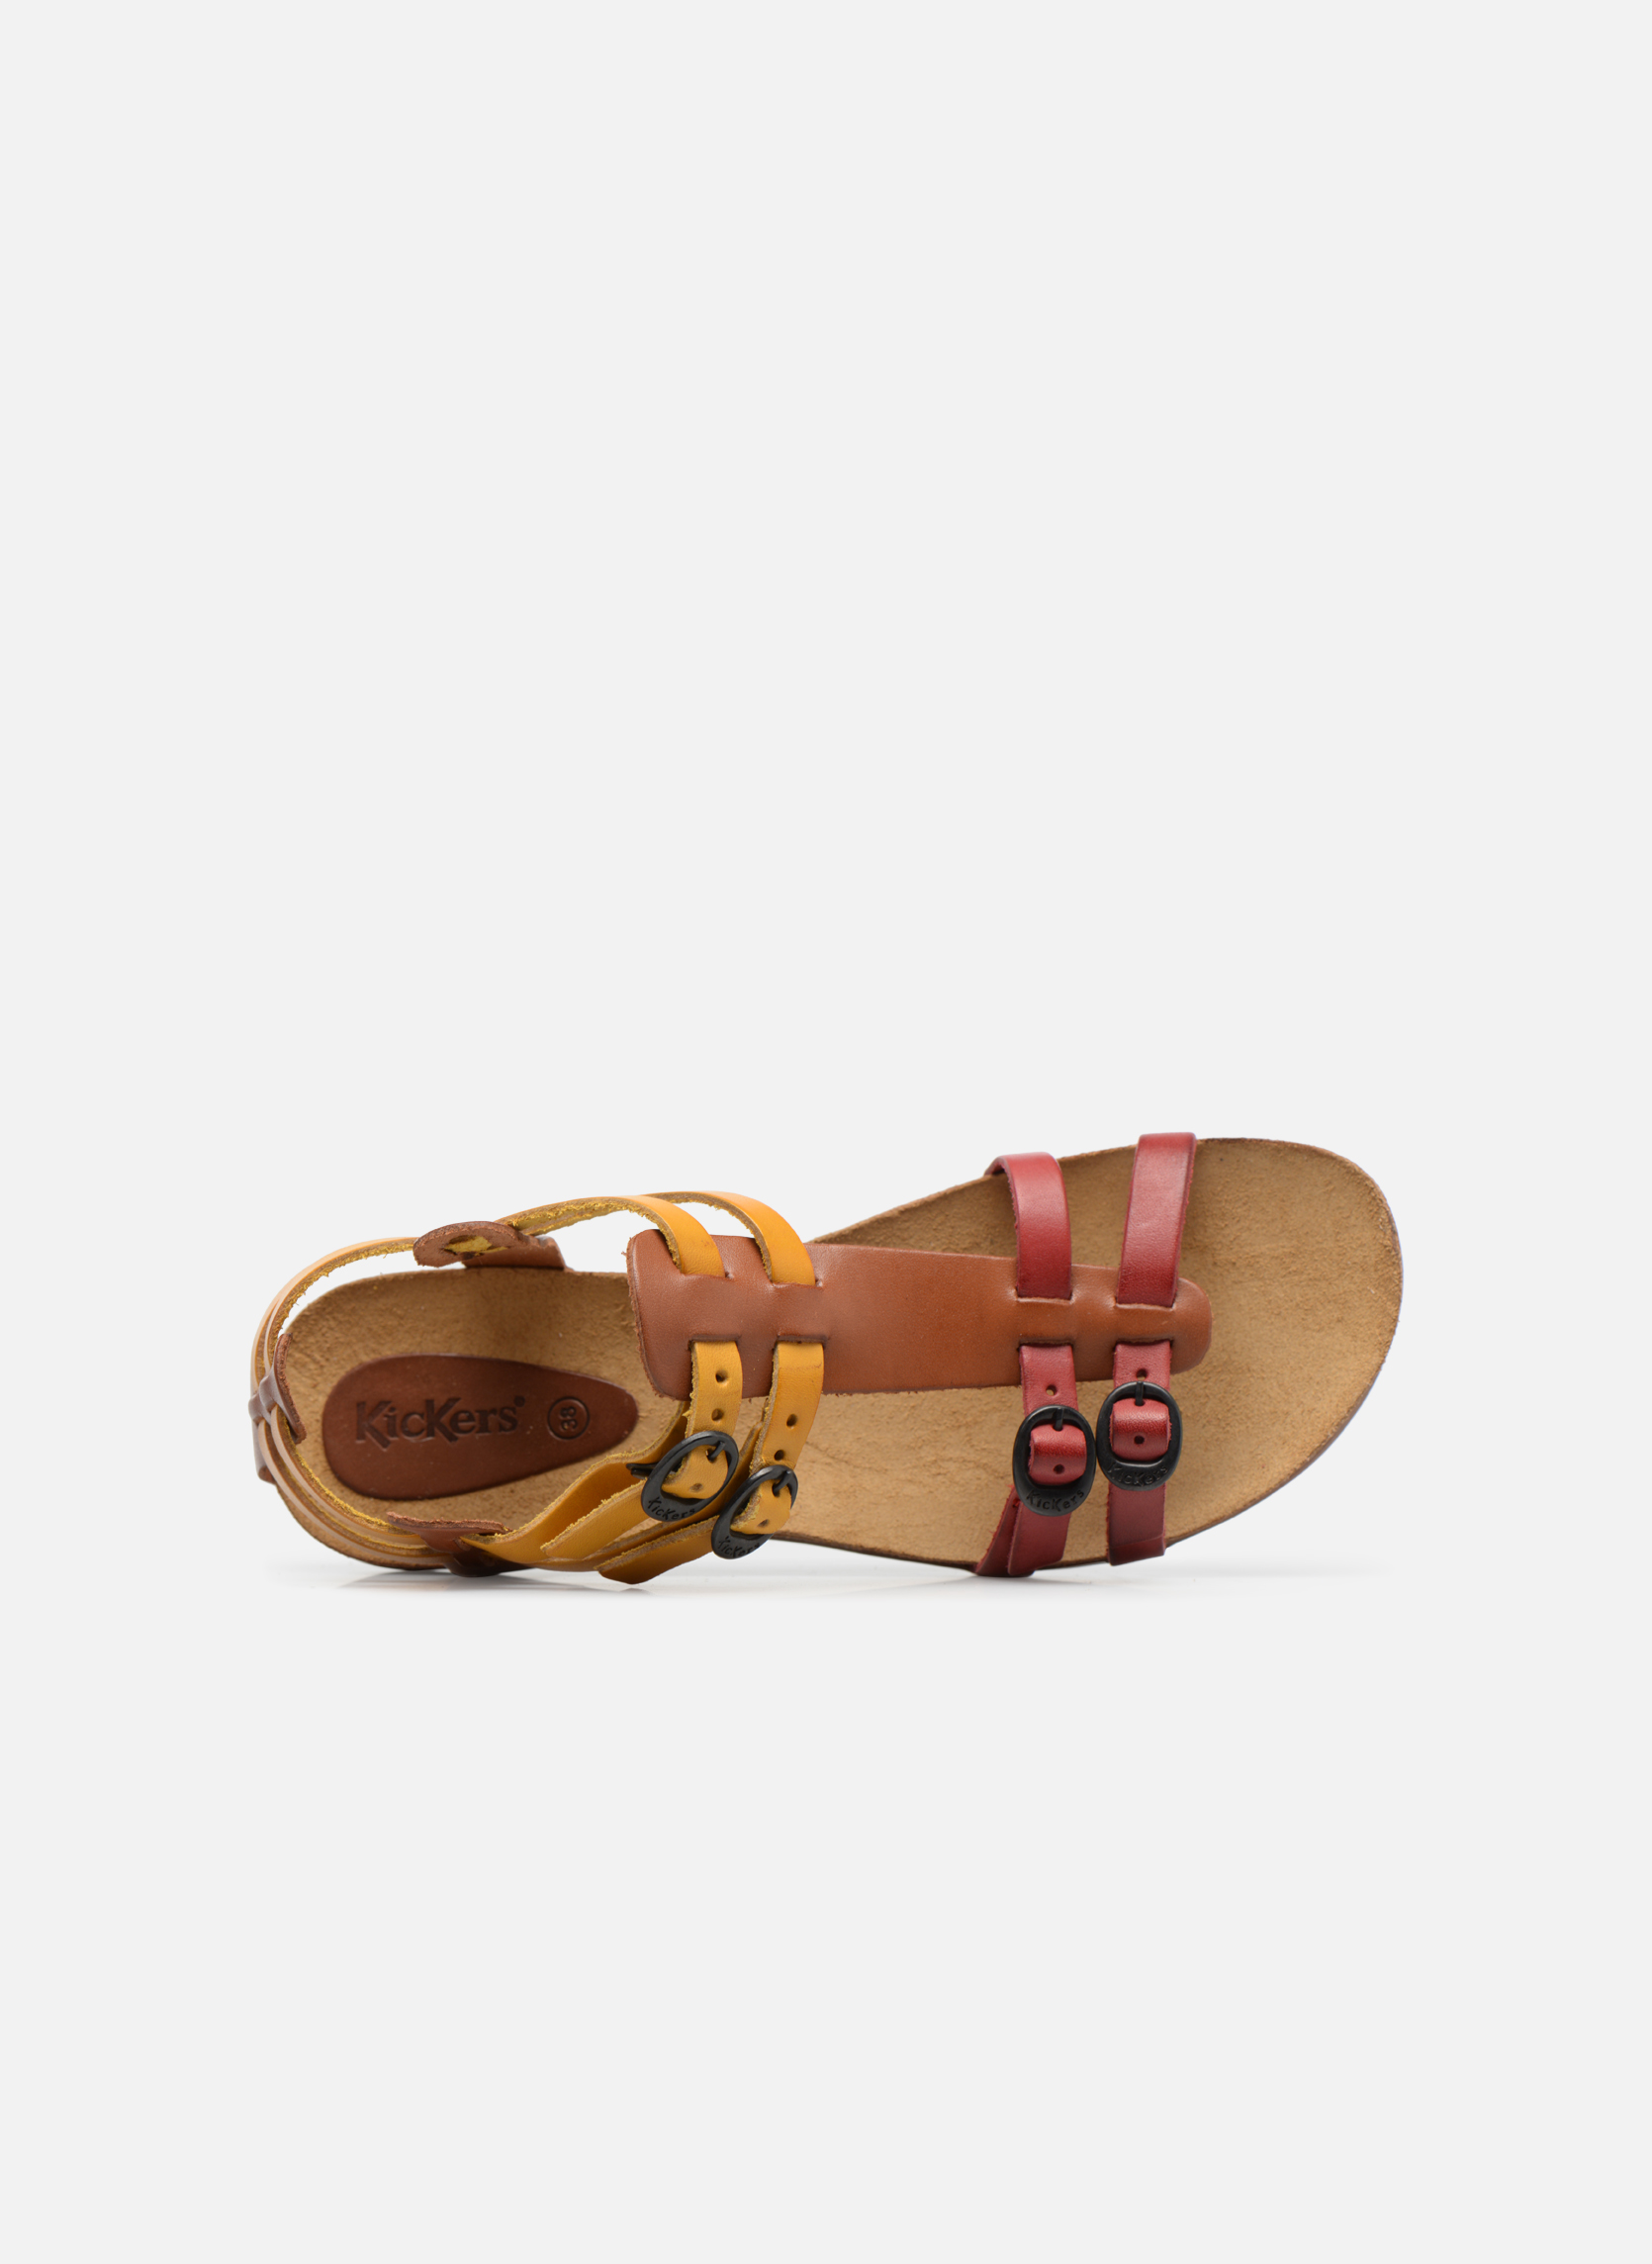 Ana Camel multicolore rouge 116